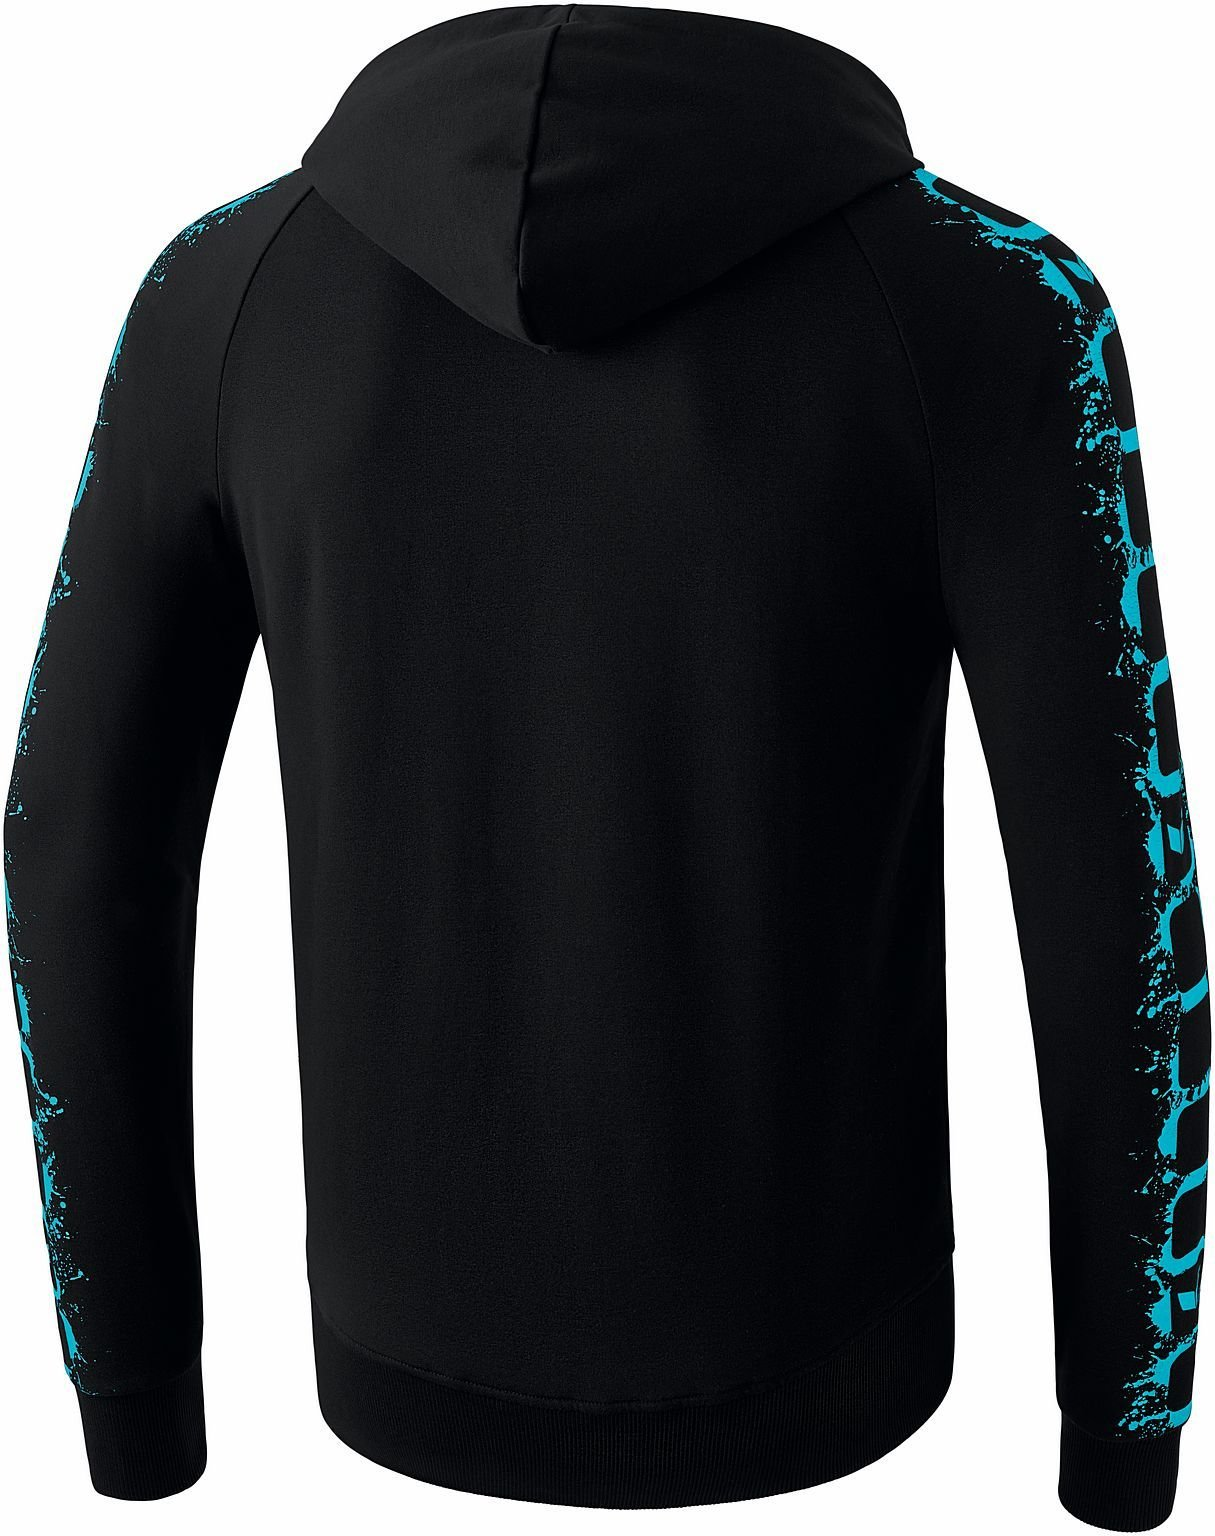 Graffic 5-C Kapuzensweat Herren Kinder